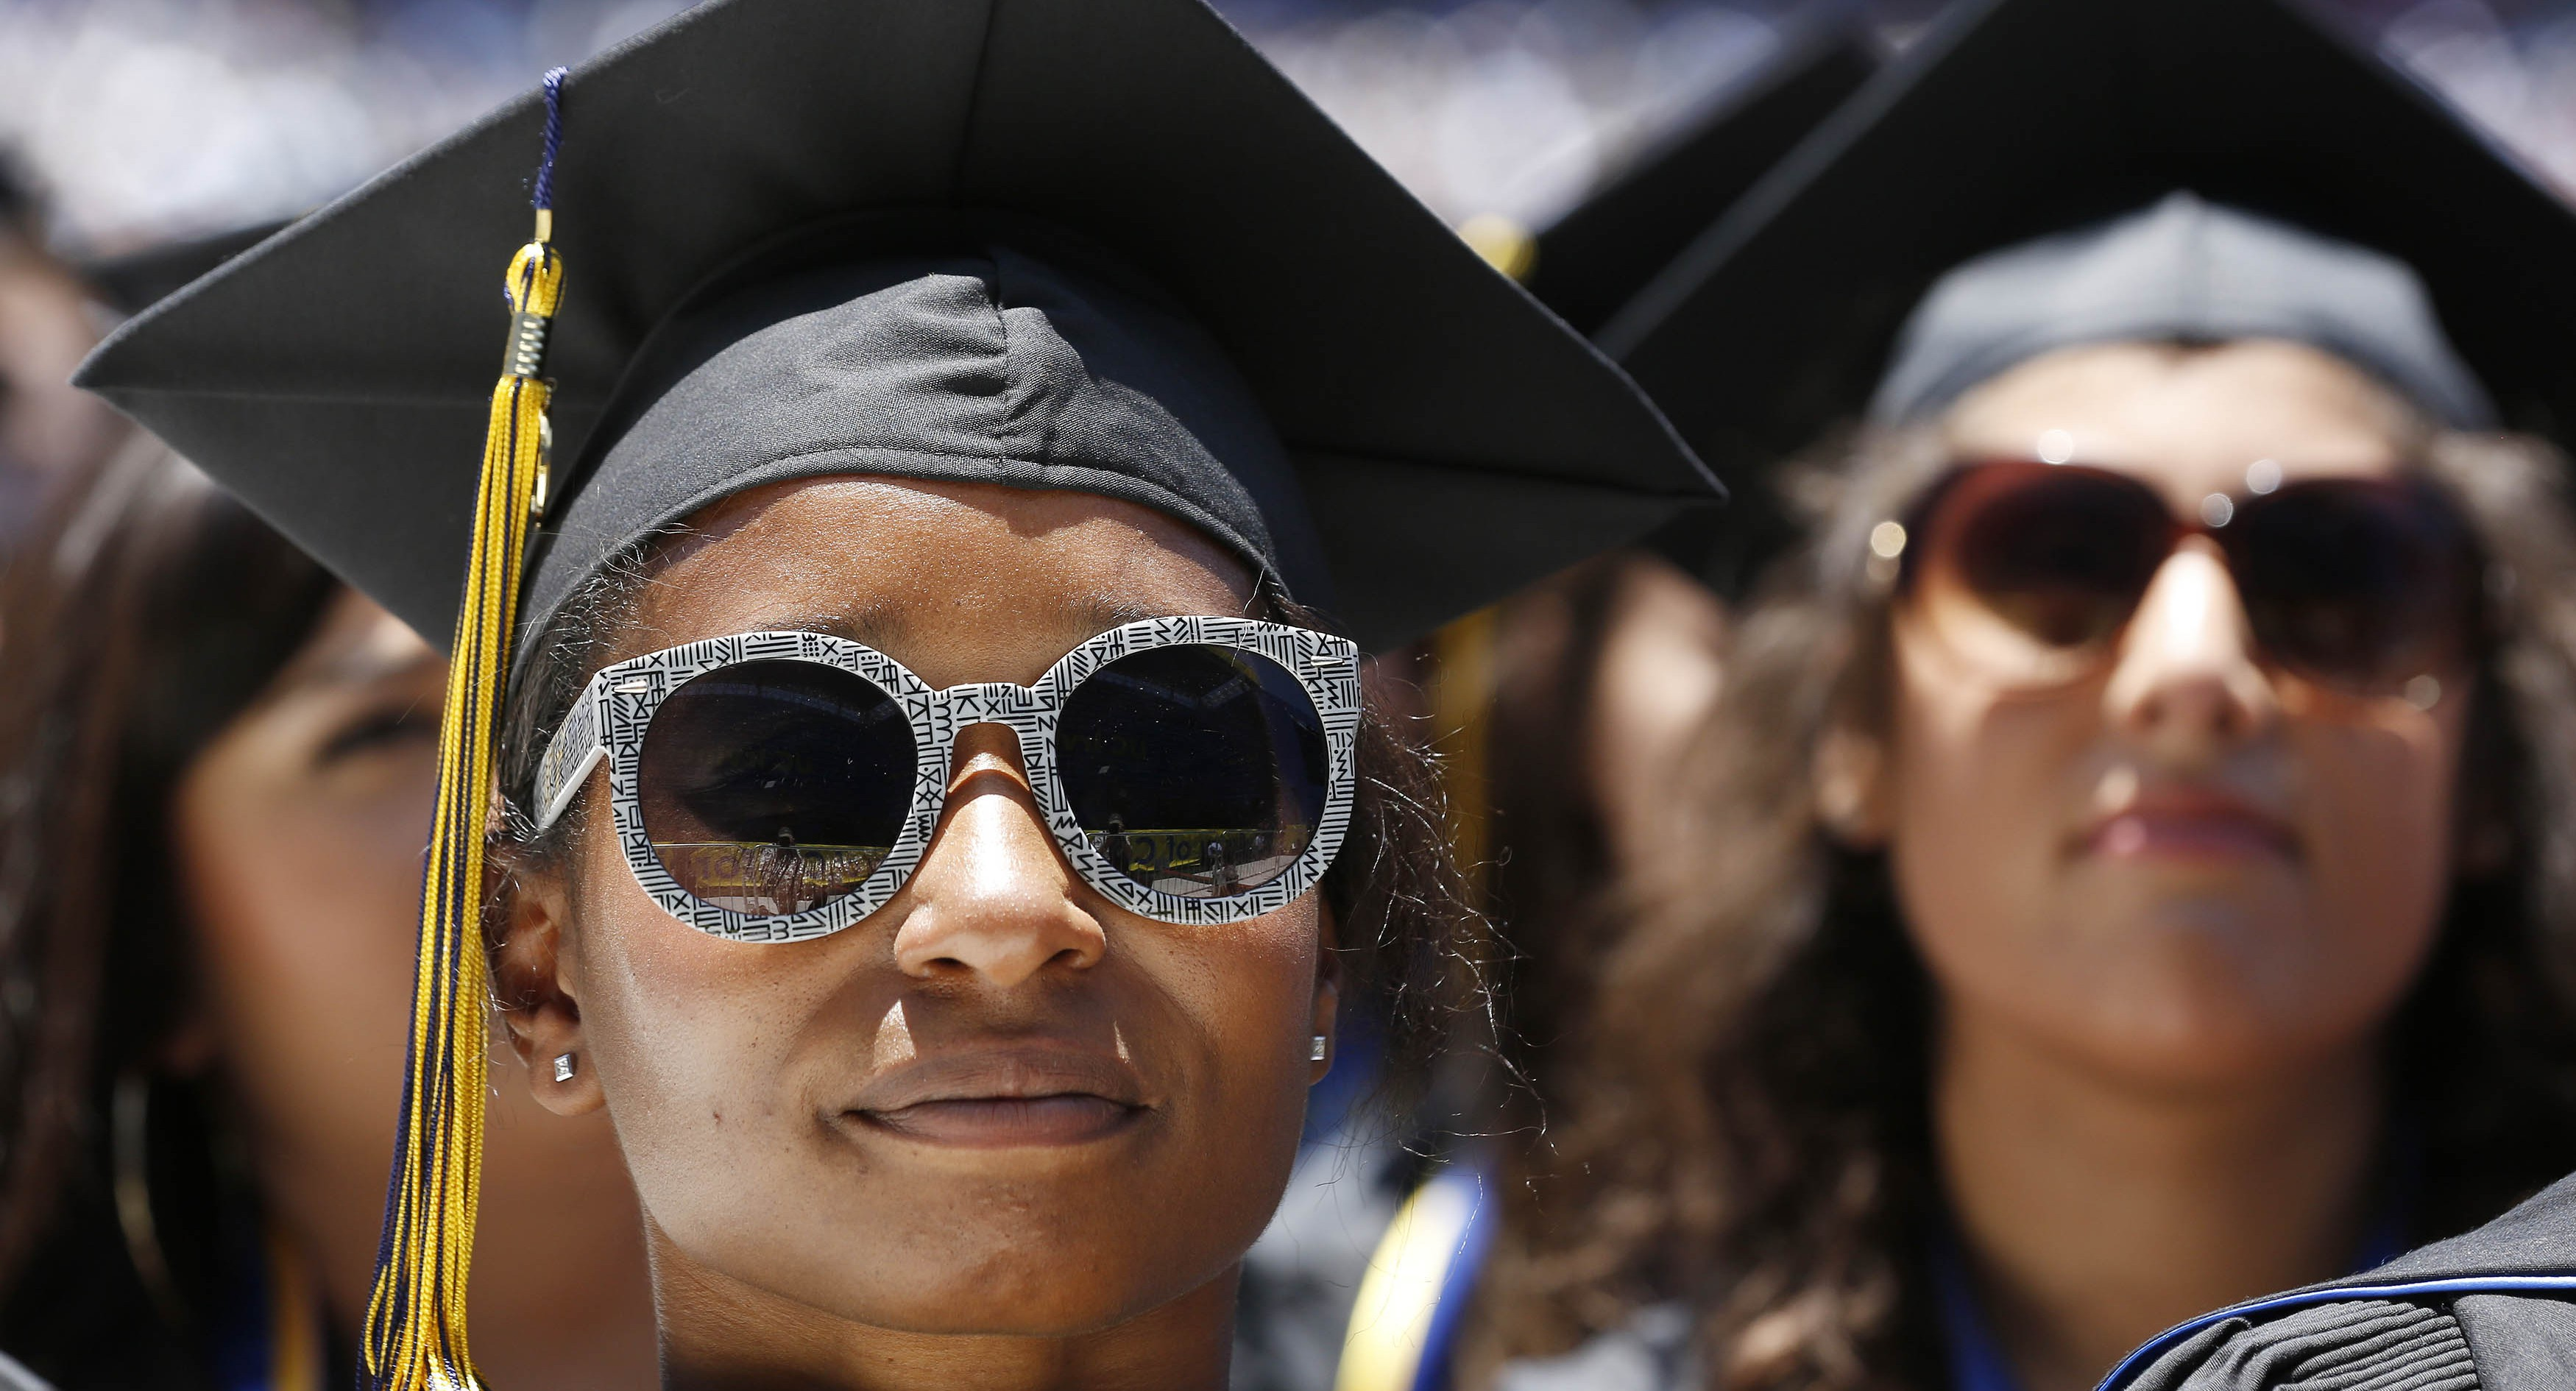 Students listen as U.S. President Barack Obama talks during the commencement ceremony for the University of California, Irvine at Angels Stadium in Anaheim, California June 14, 2014.